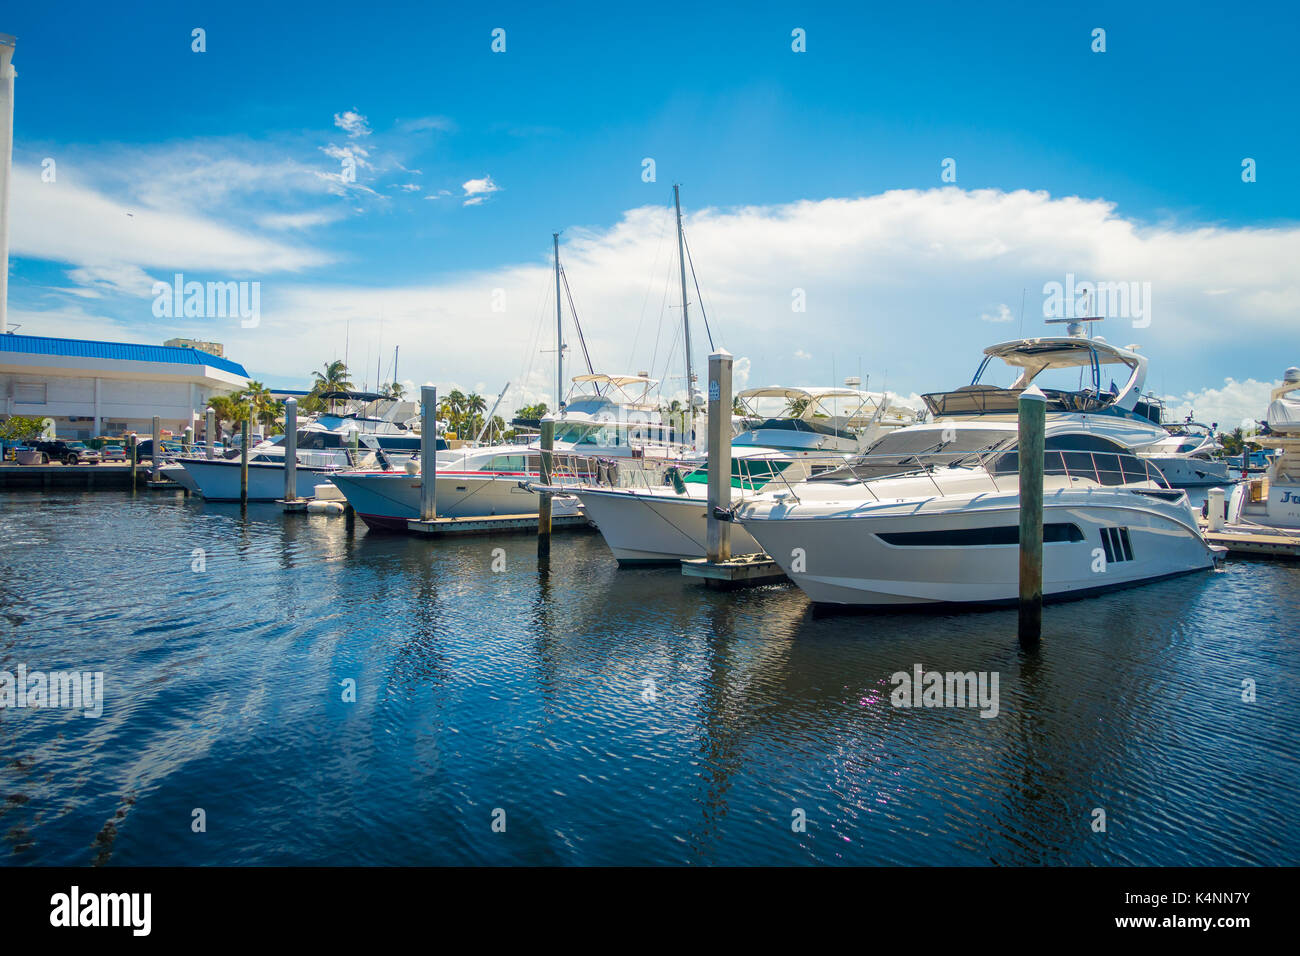 FORT LAUDERDALE, USA - JULY 11, 2017: A line of boats displayed for sale at the Fort Lauderdale. Stock Photo